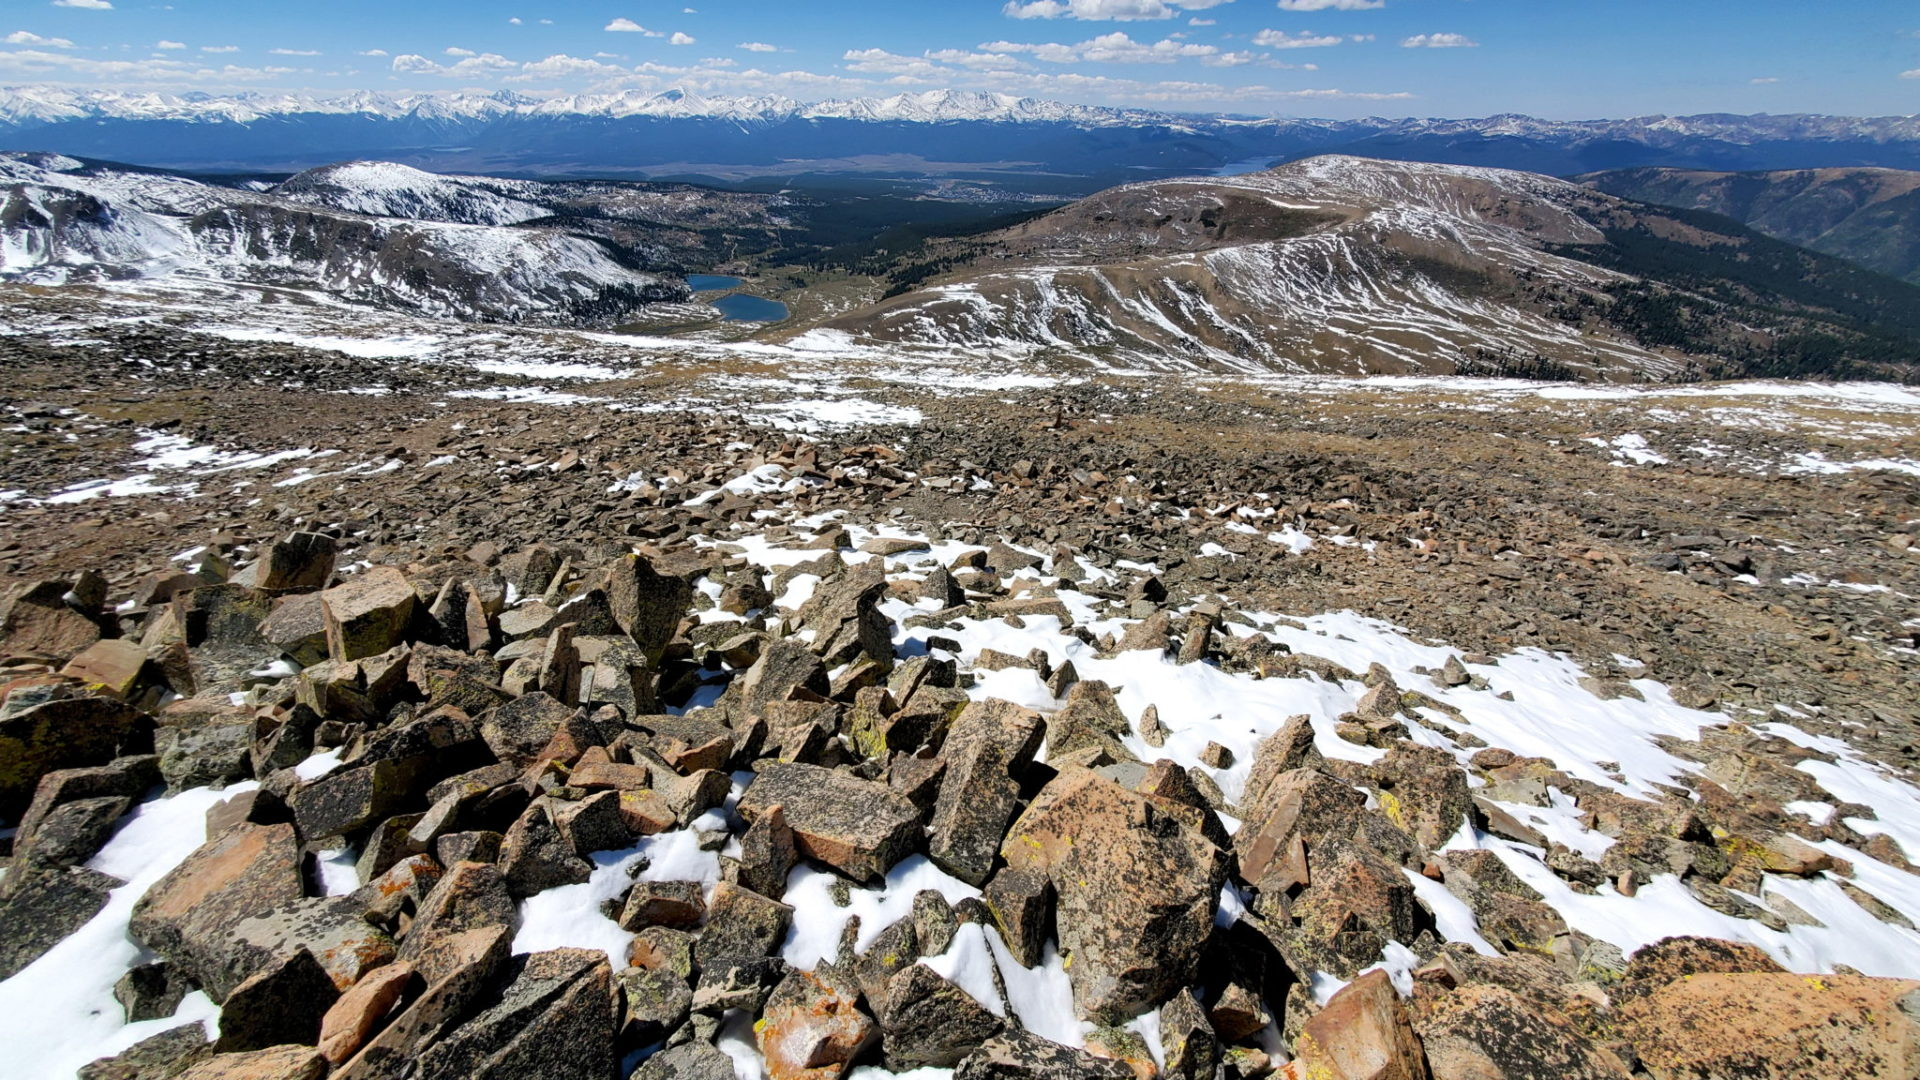 View west with the Sawatch Range in the distance